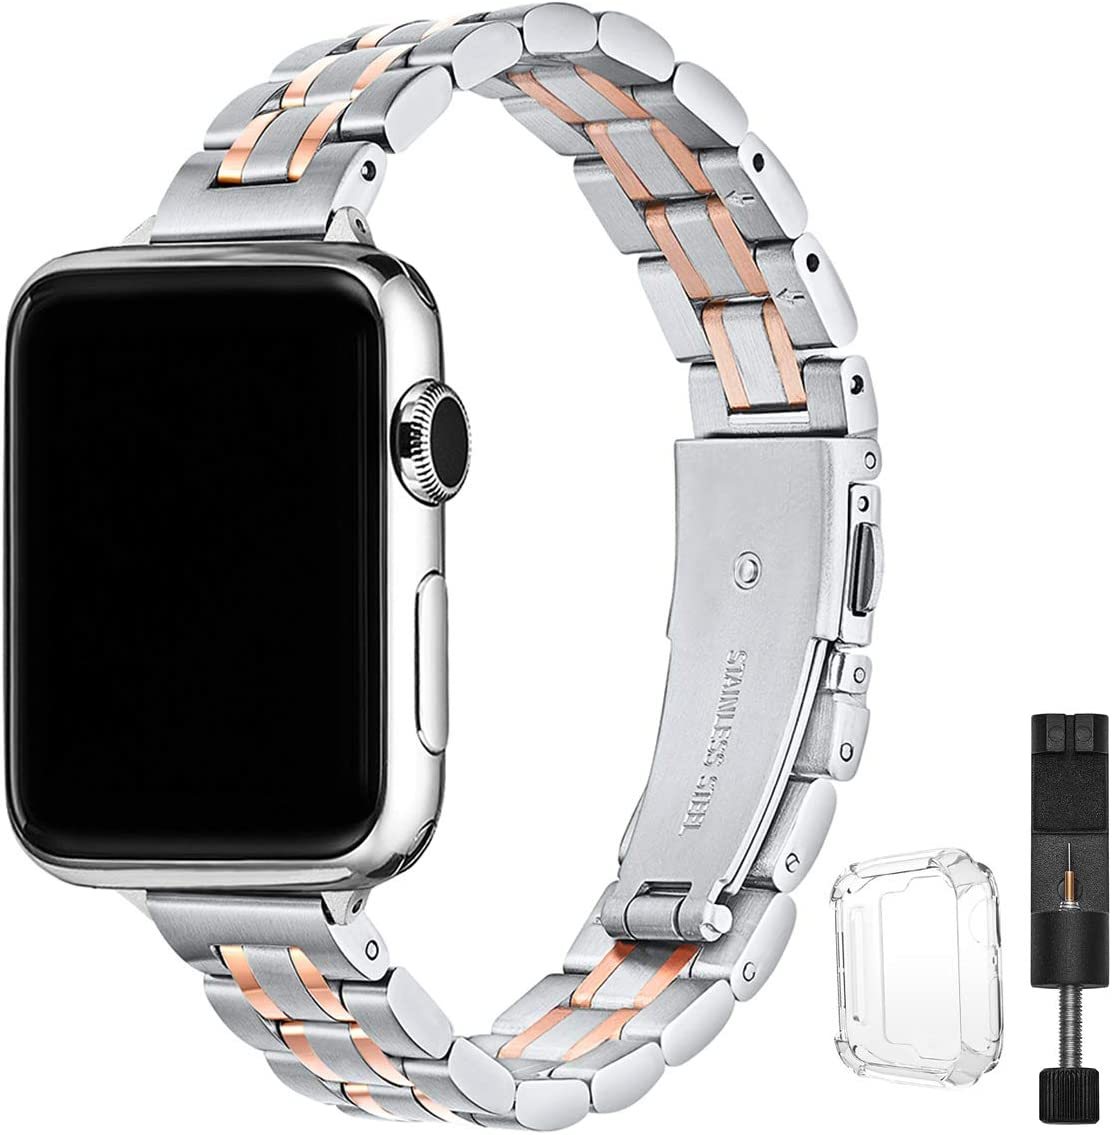 STIROLL Thin Replacement Band Compatible for Apple Watch 38mm 40mm 42mm 44mm, Stainless Steel Metal Wristband Women Men for iWatch SE Series 6/5/4/3/2/1 (Silver+Rose Gold, 42mm/44mm)